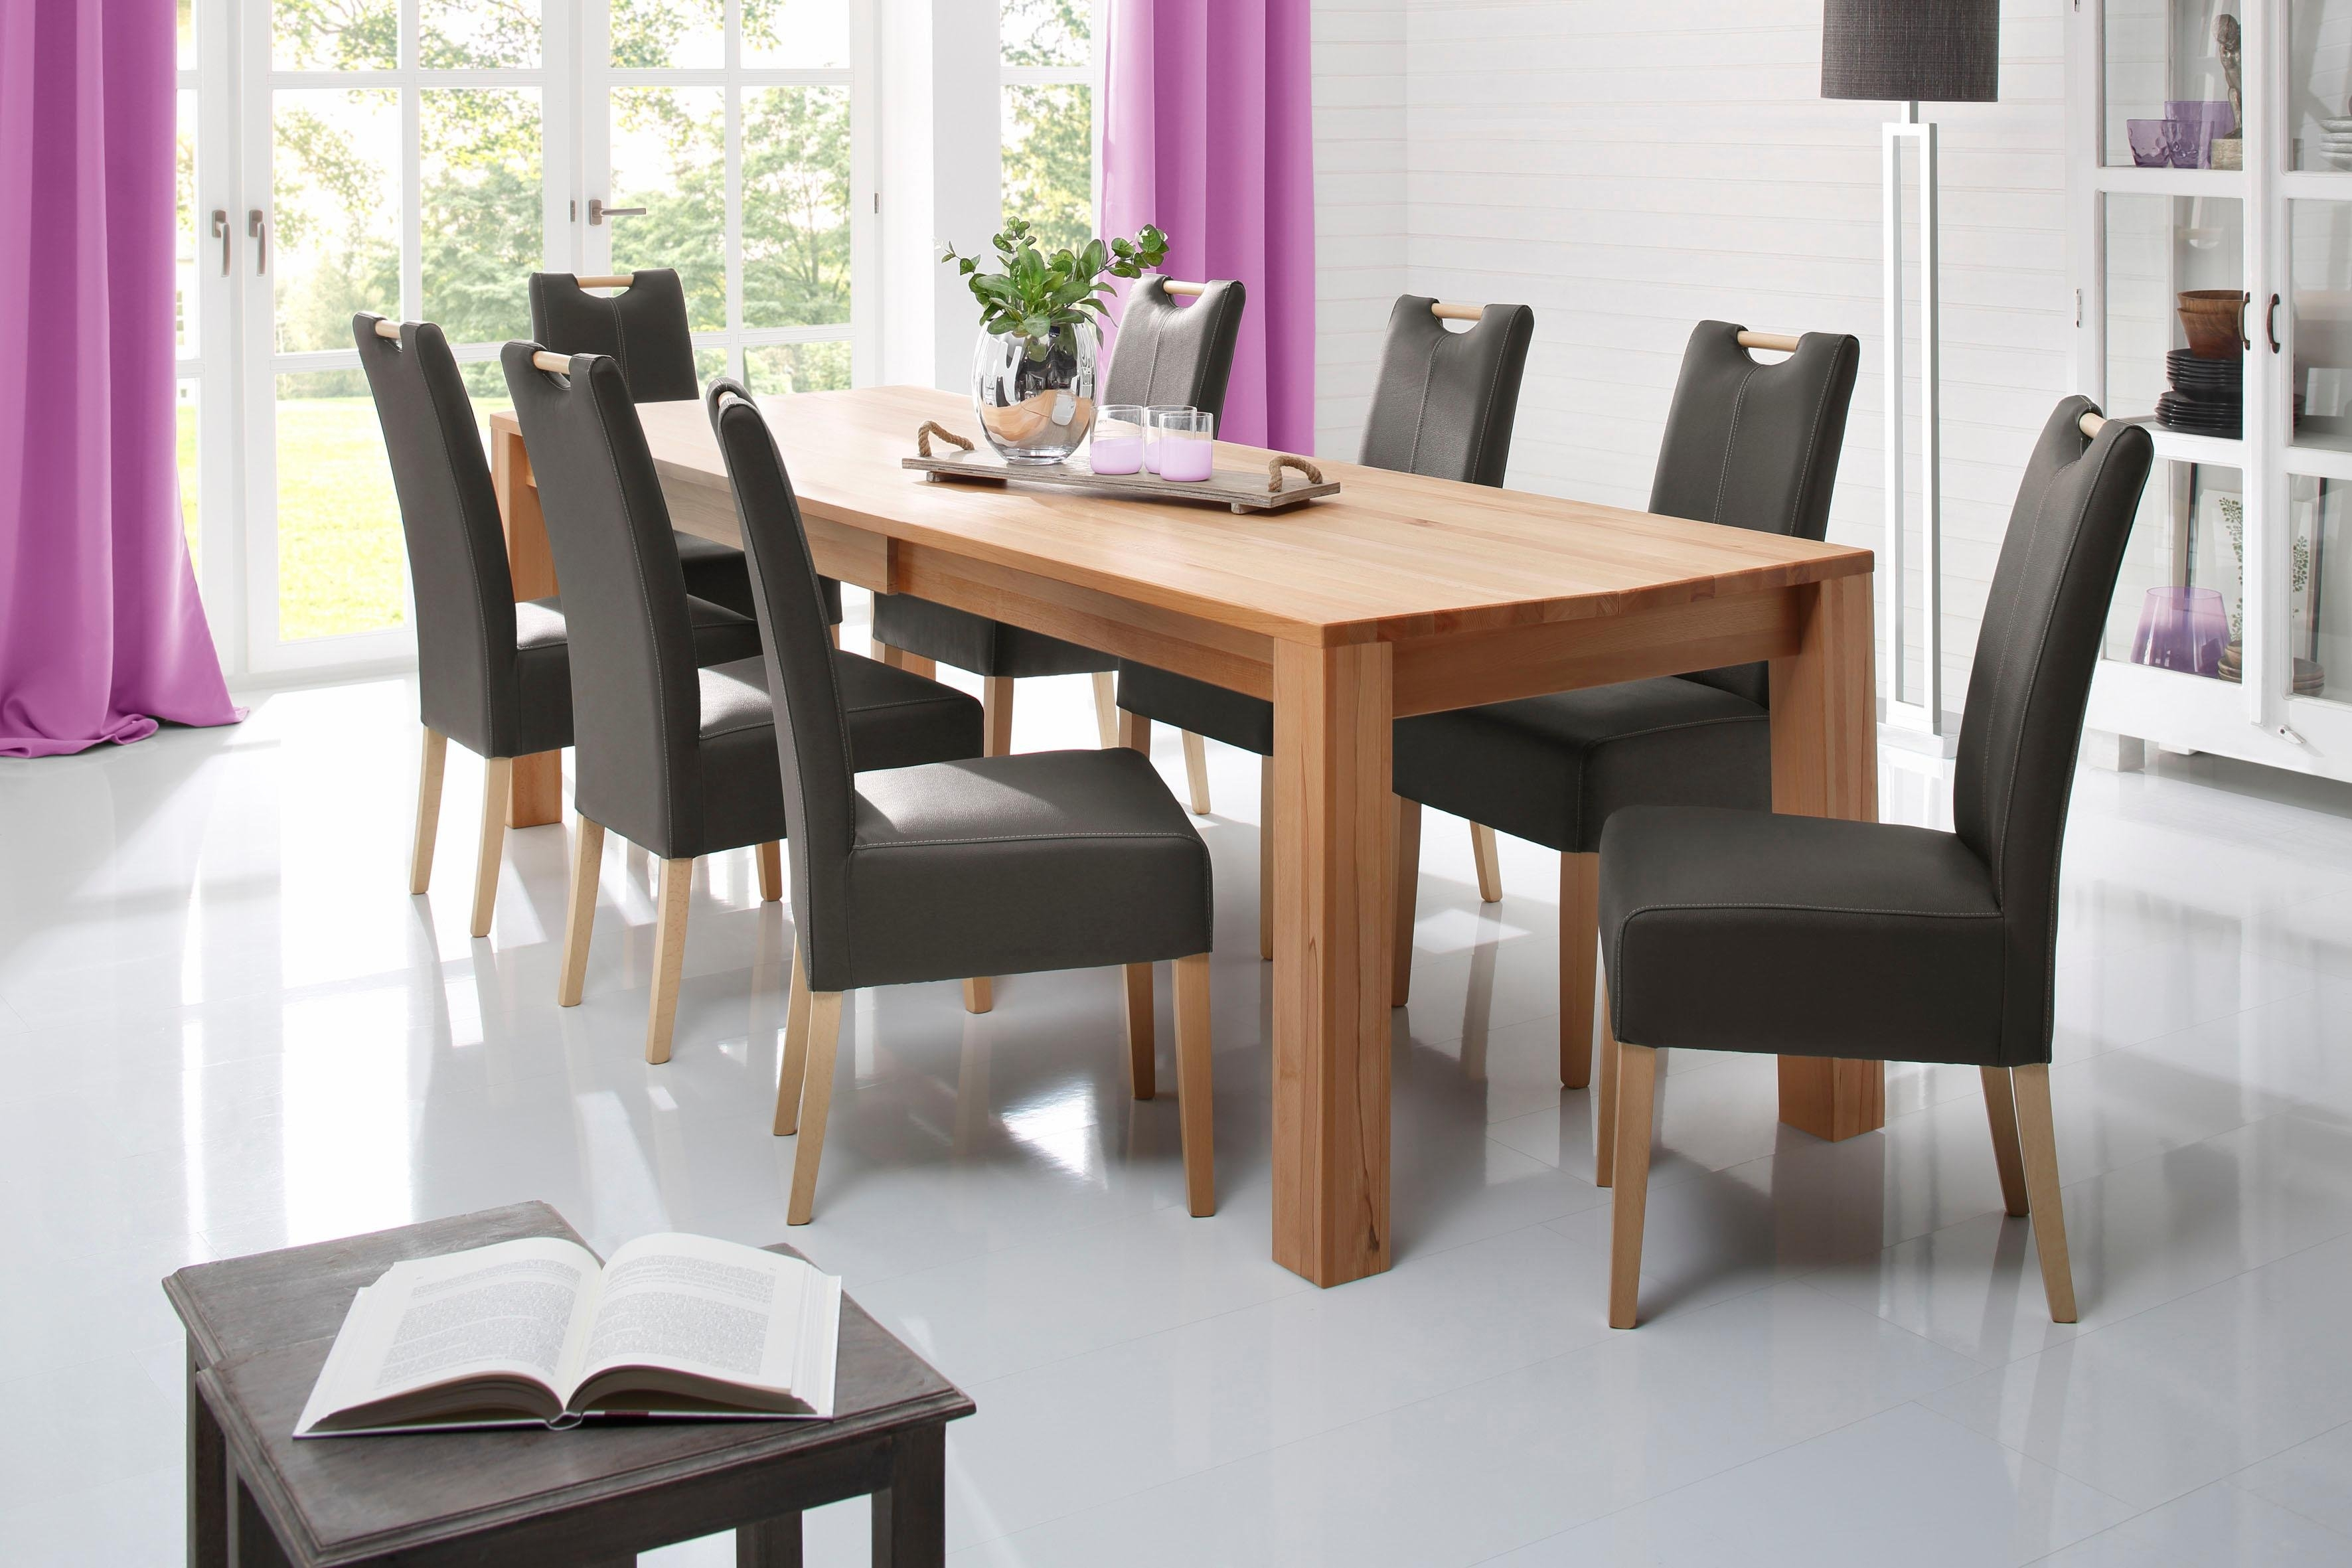 Premium Collection By Home Affaire Eettafel Oslo in de webshop van OTTO kopen